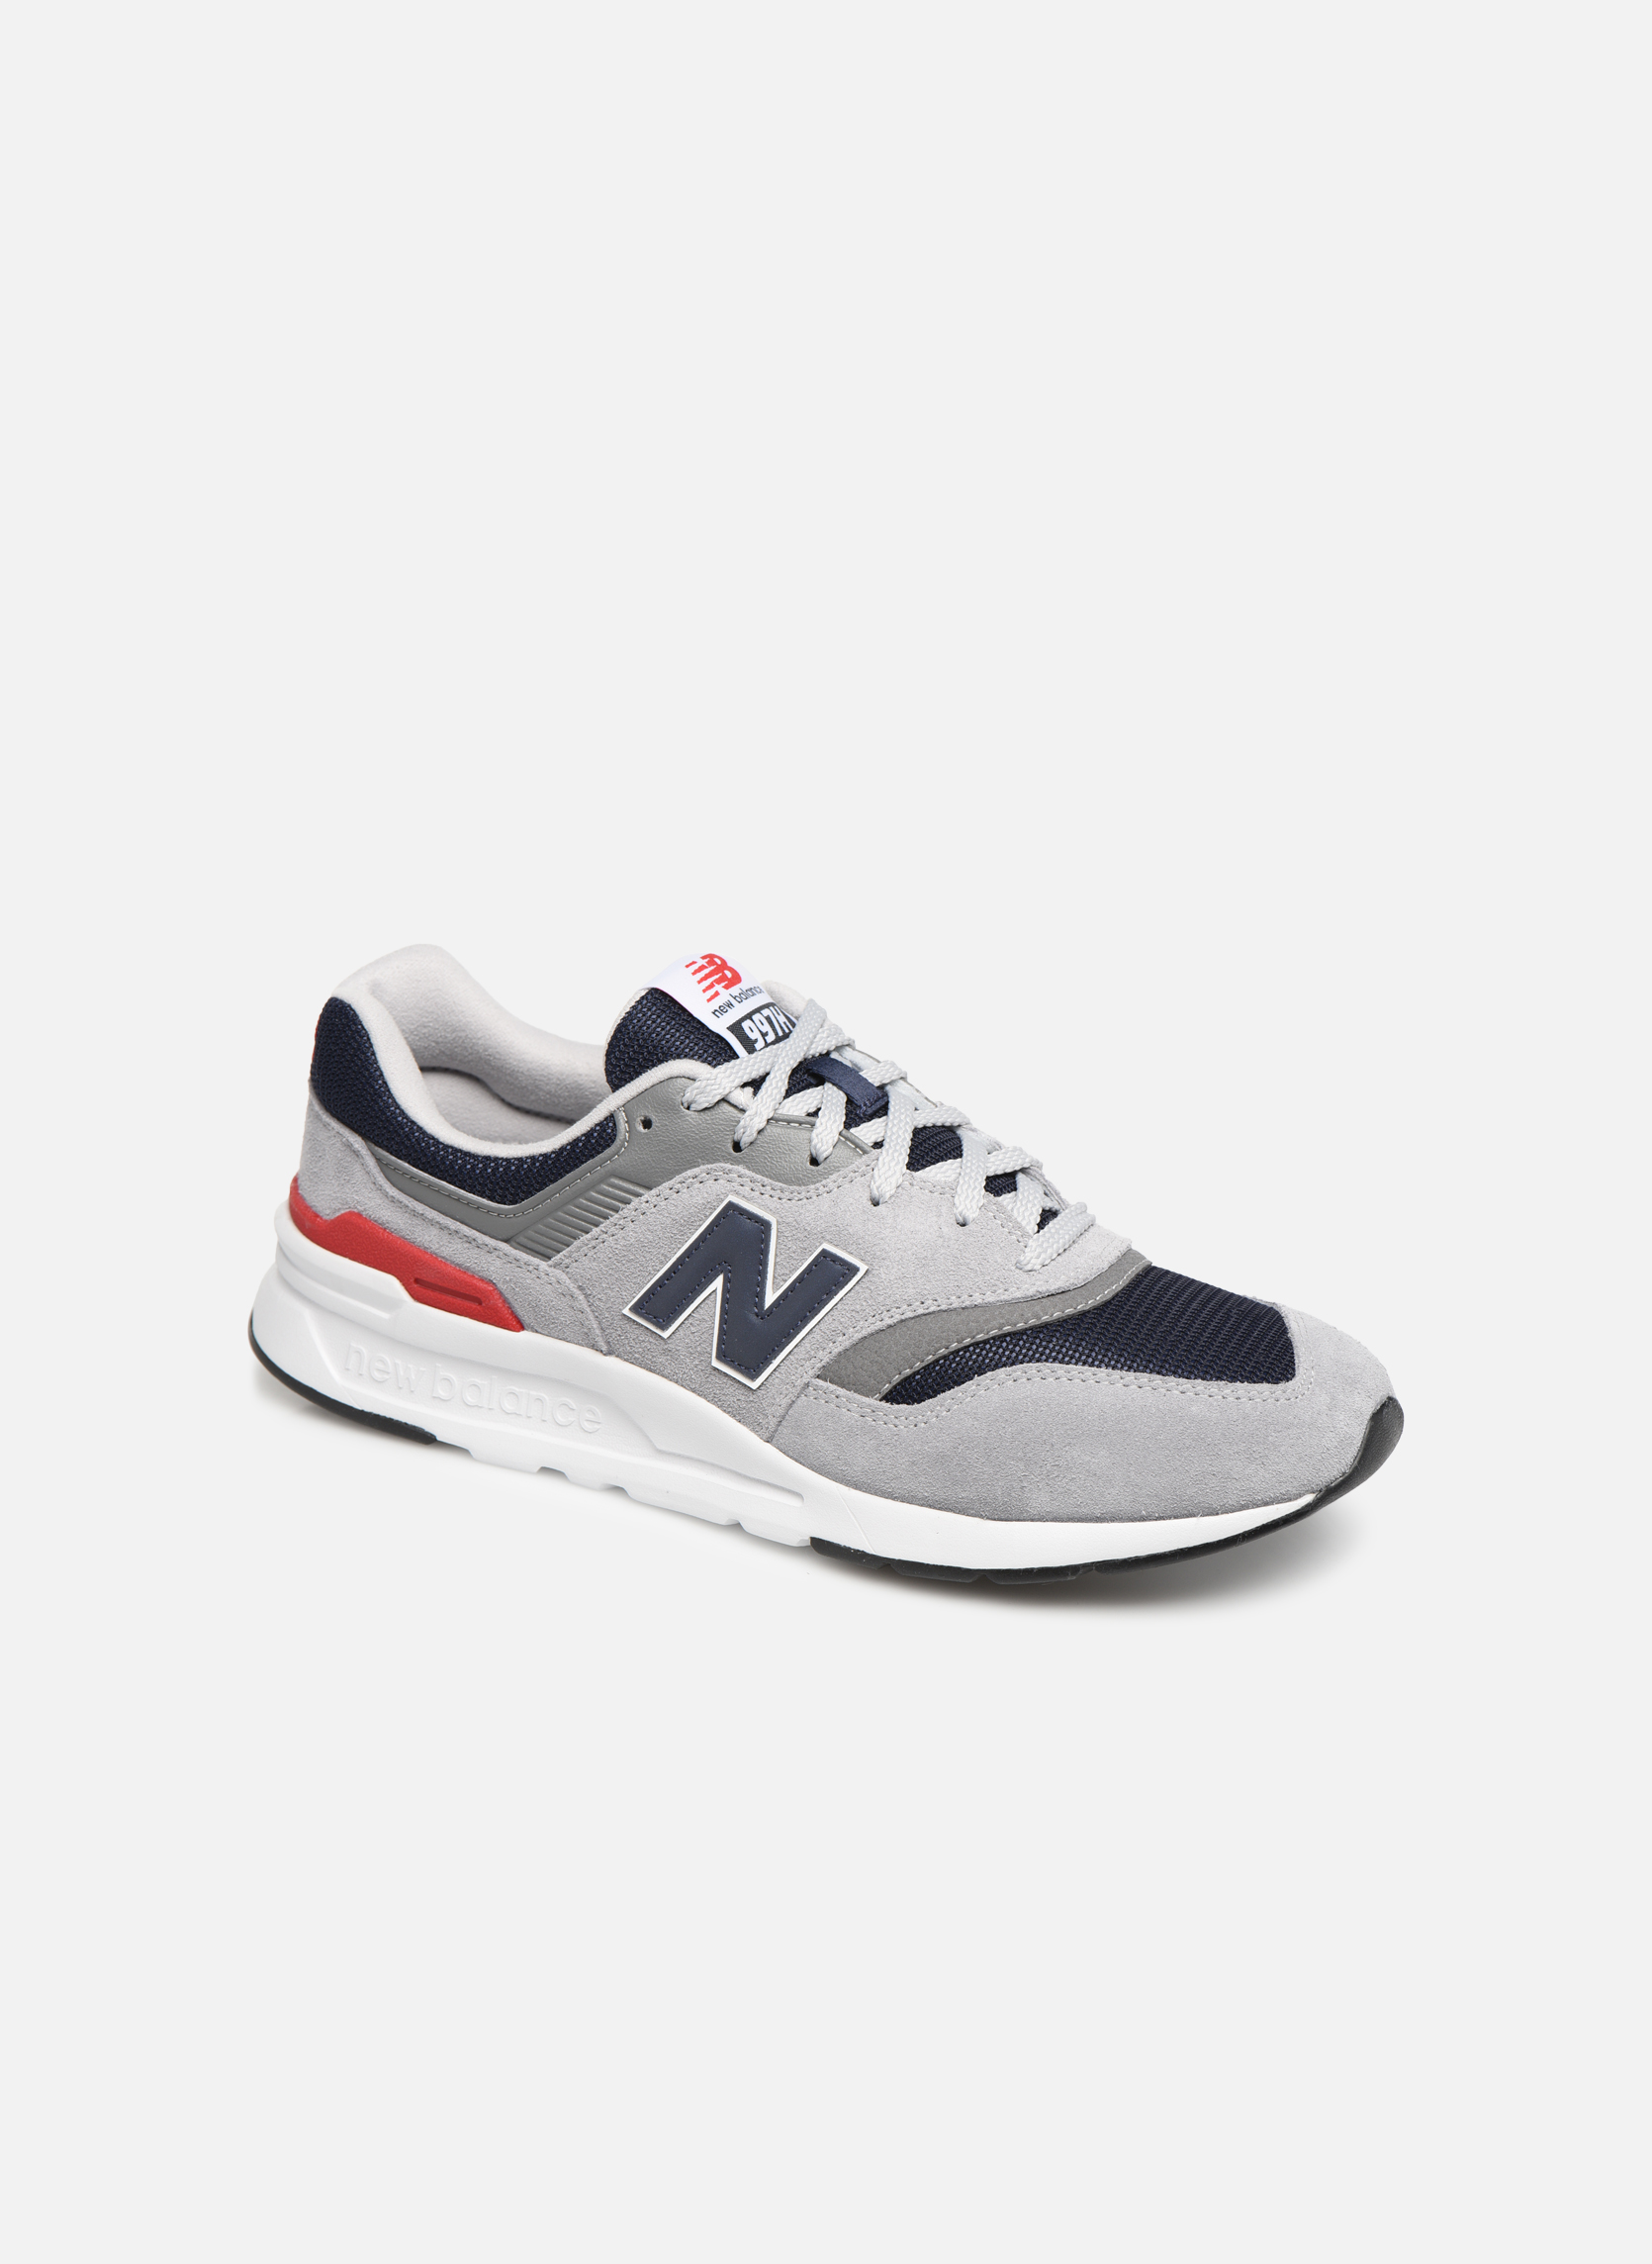 Sneakers 997 by New Balance